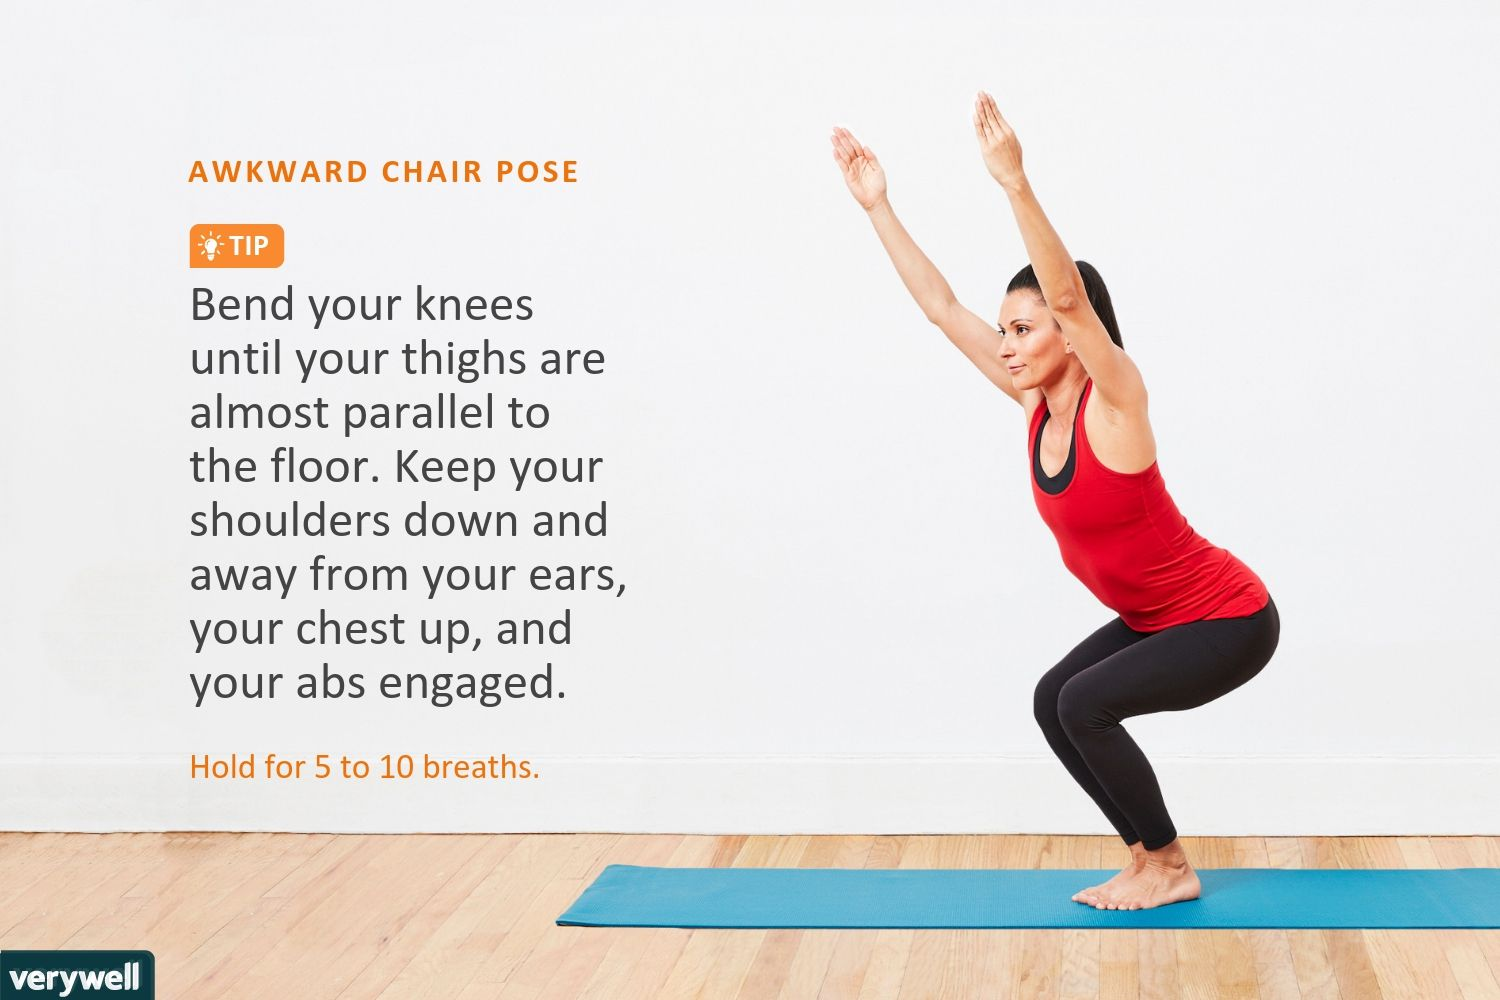 yoga chair pose mayfair dining chairs set of 2 how to do awkward utkatasana show article table contents